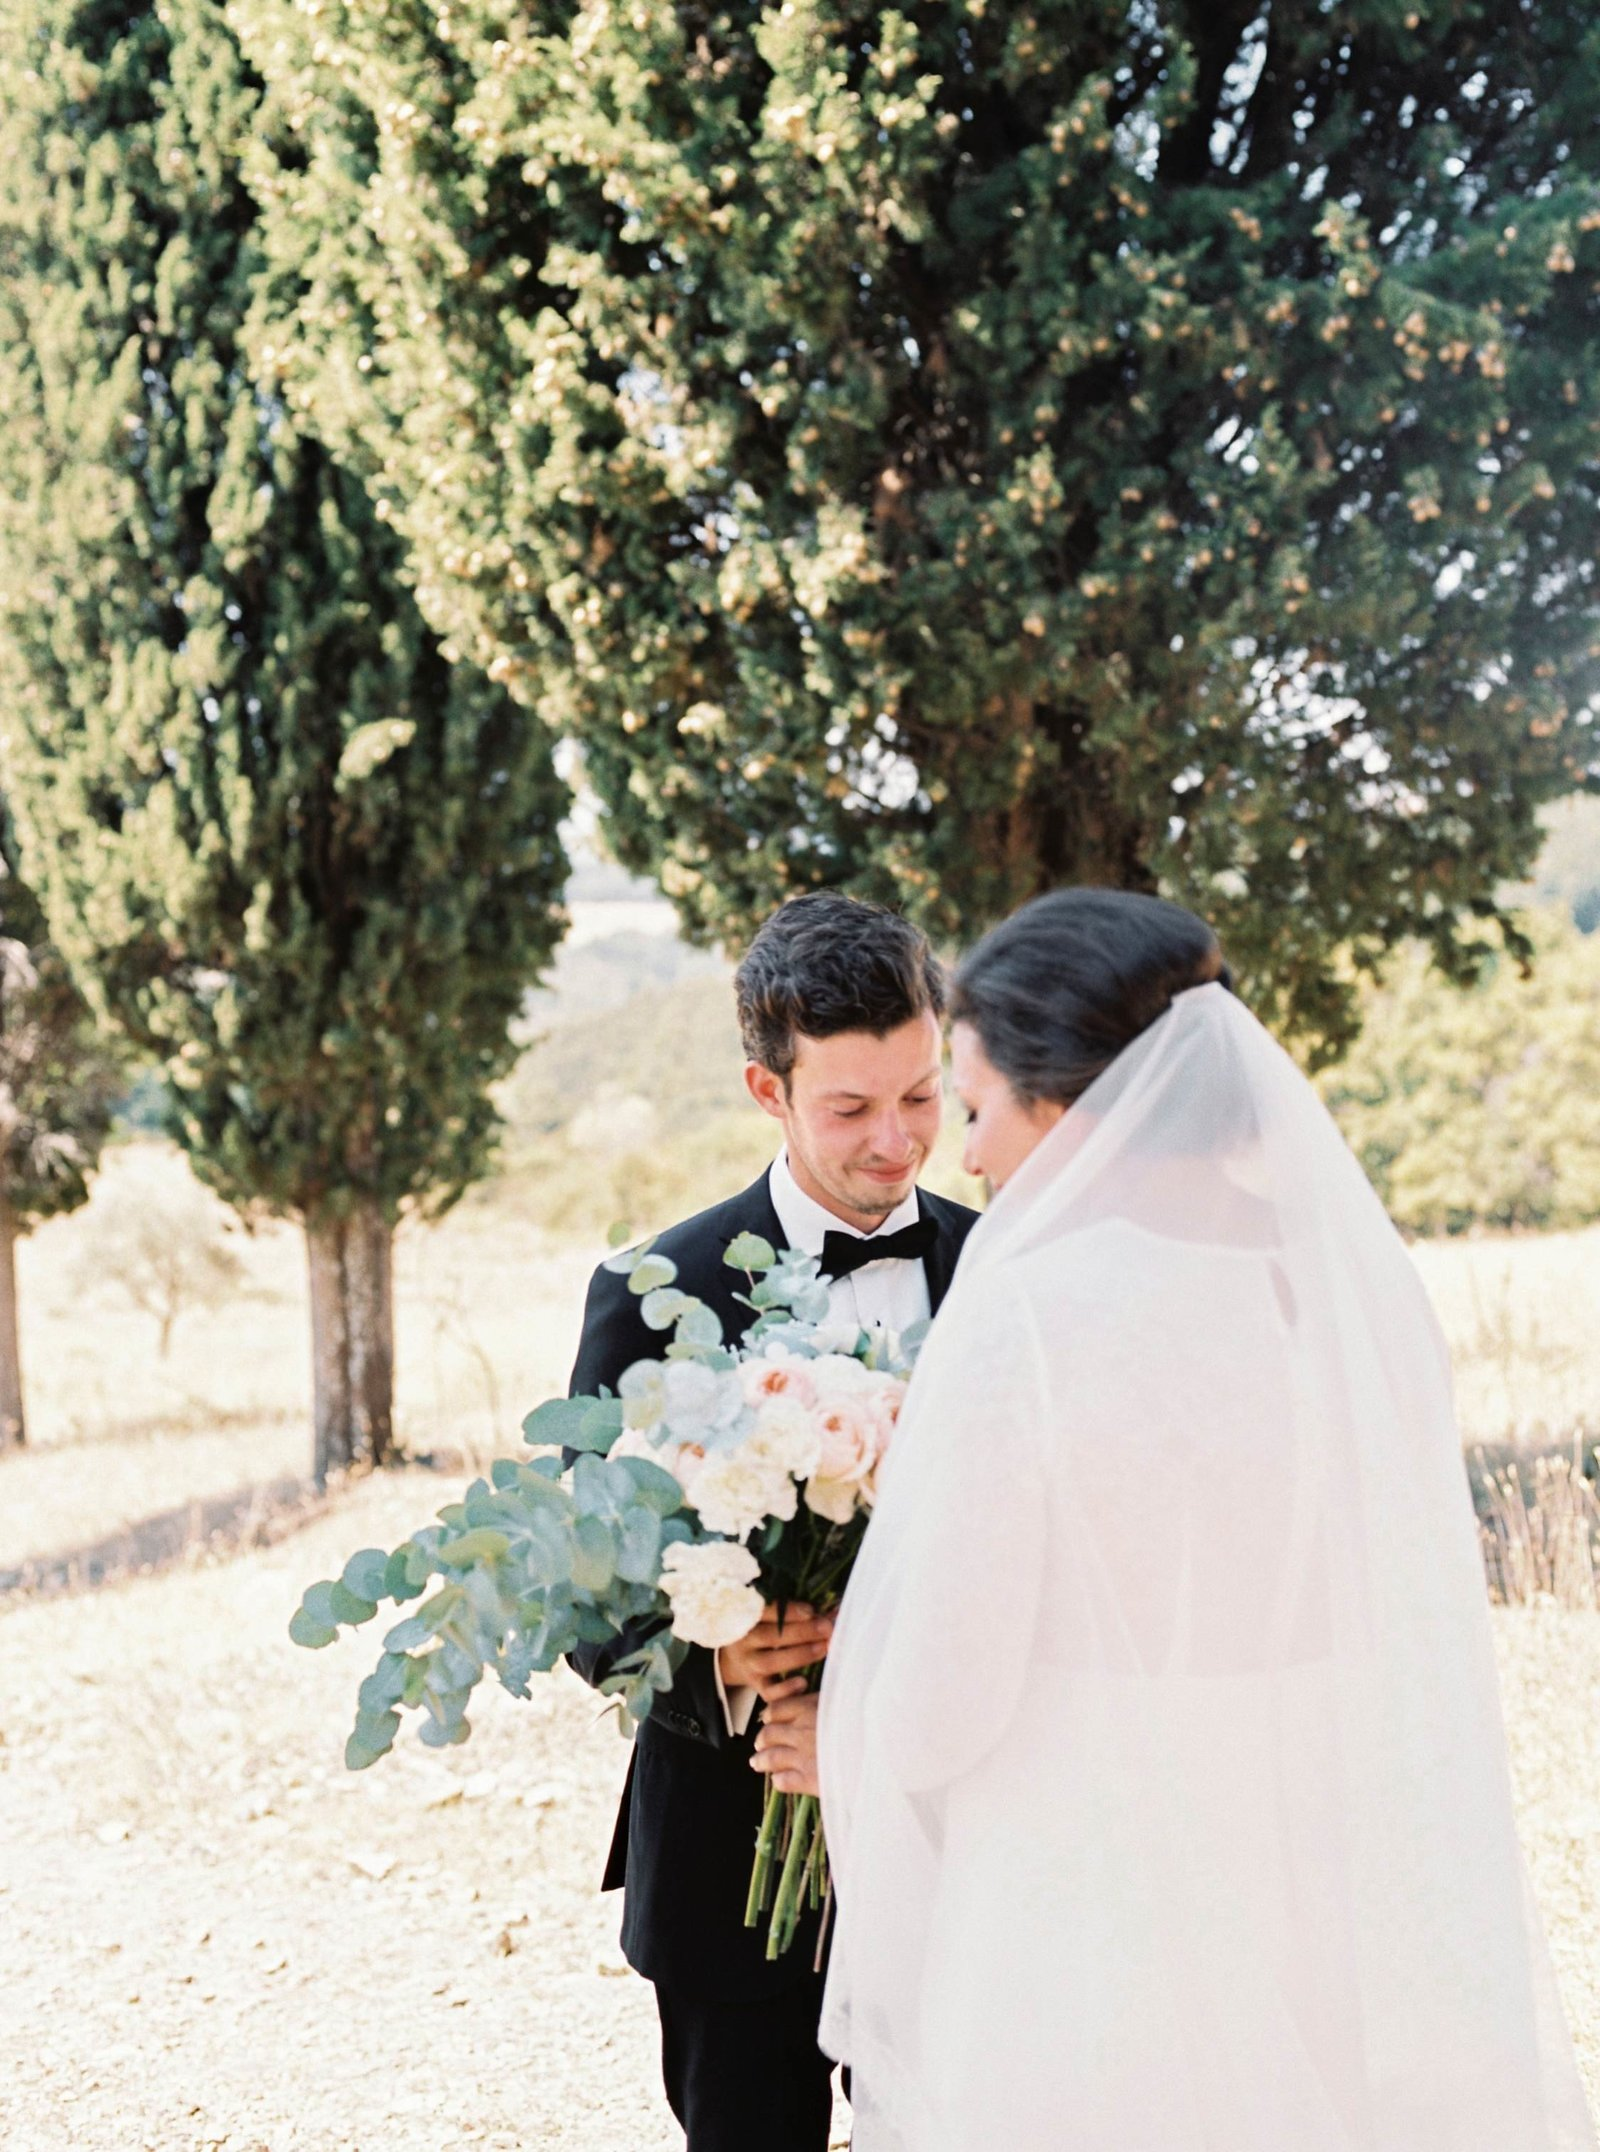 First look wedding couple in Radicondoli, Tuscany